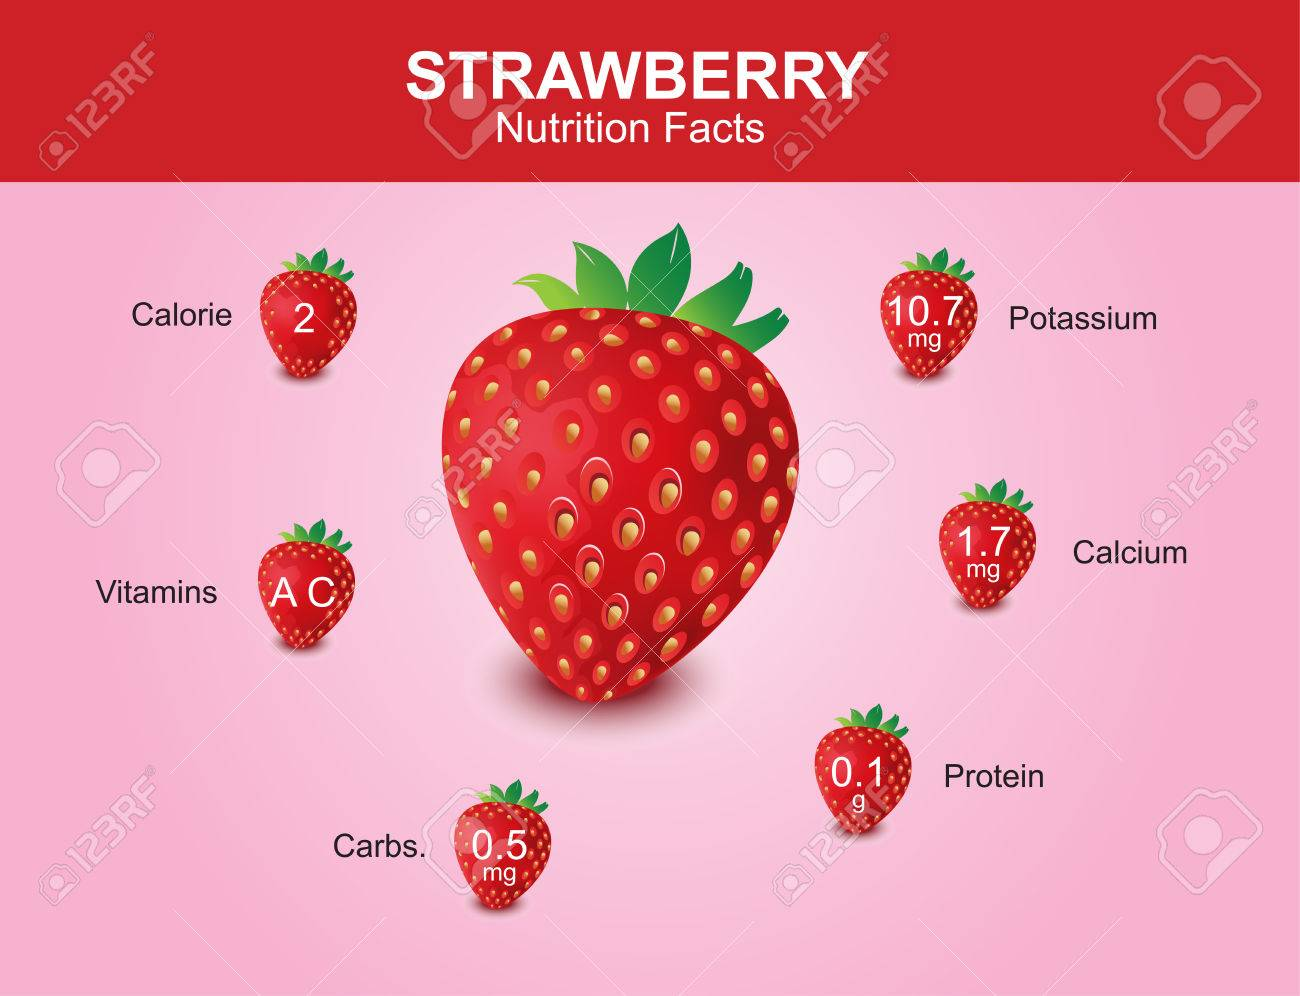 strawberry nutrition facts strawberry fruit with information strawberry vector - 40968334